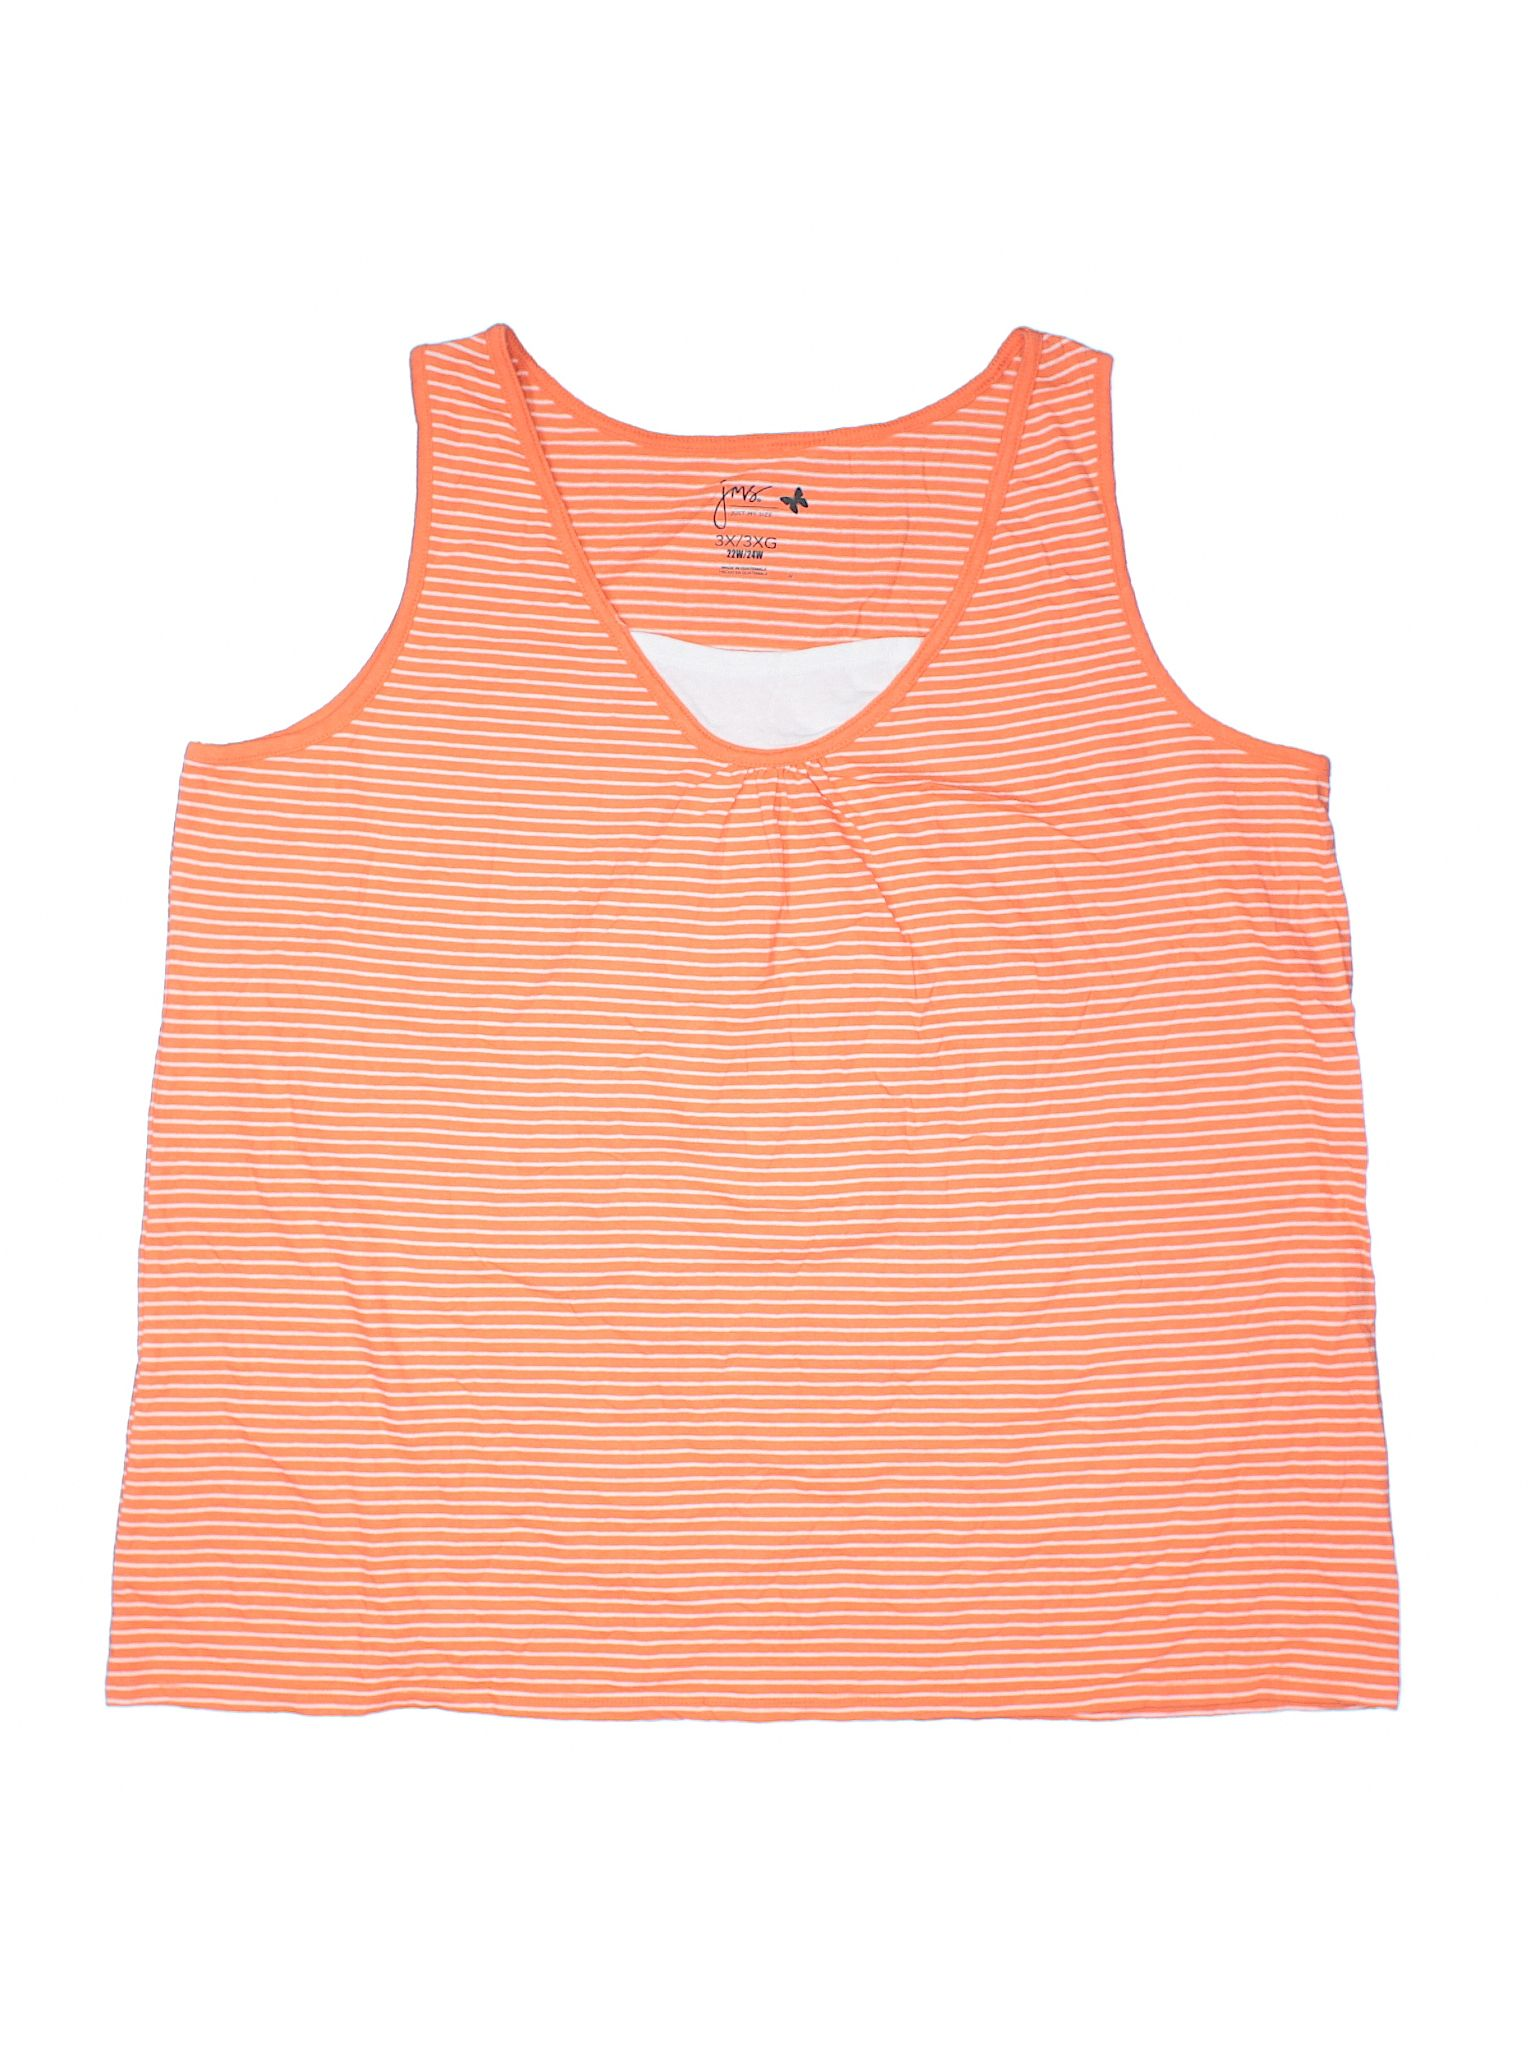 Just My Size Tank Top Size 2400 Coral Womens Tops